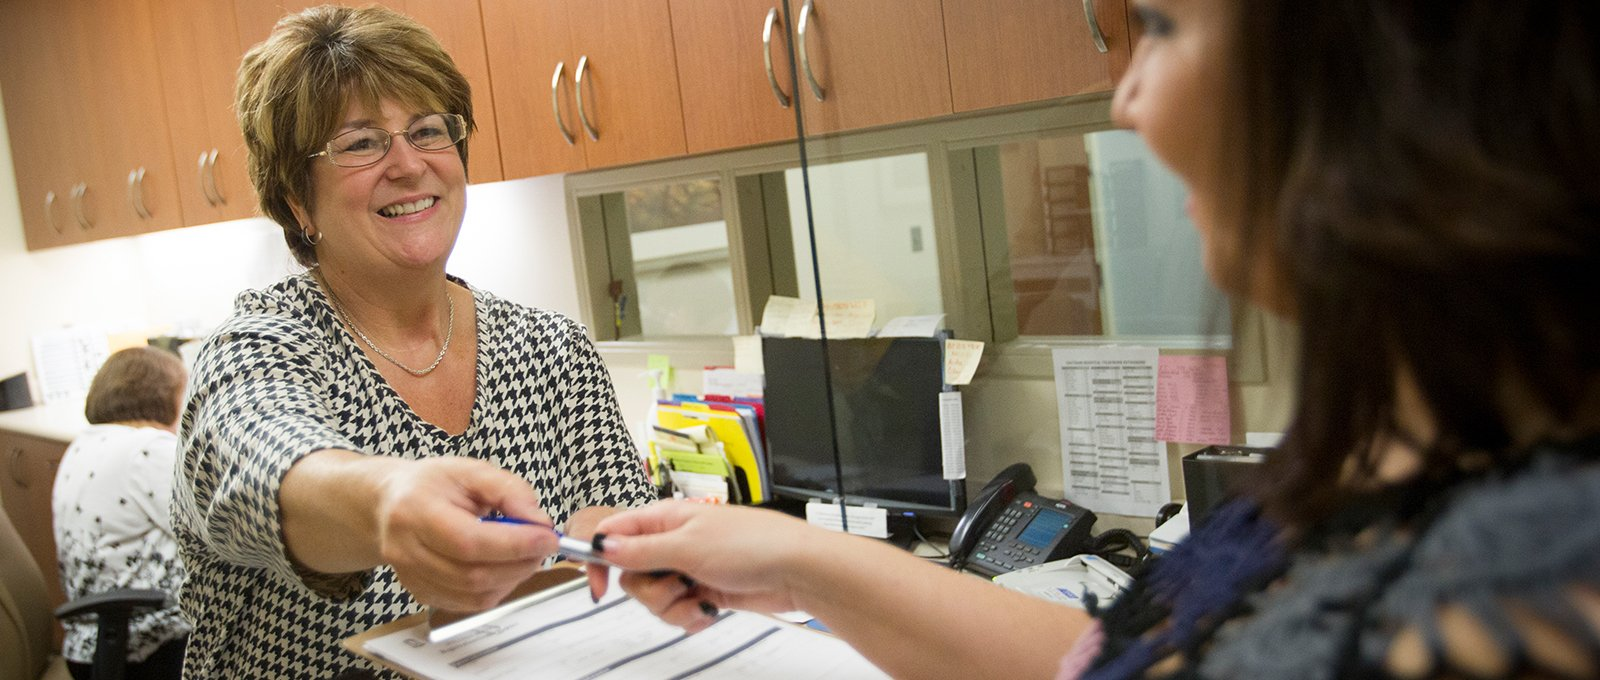 Smiling staff member hands patient form to patient